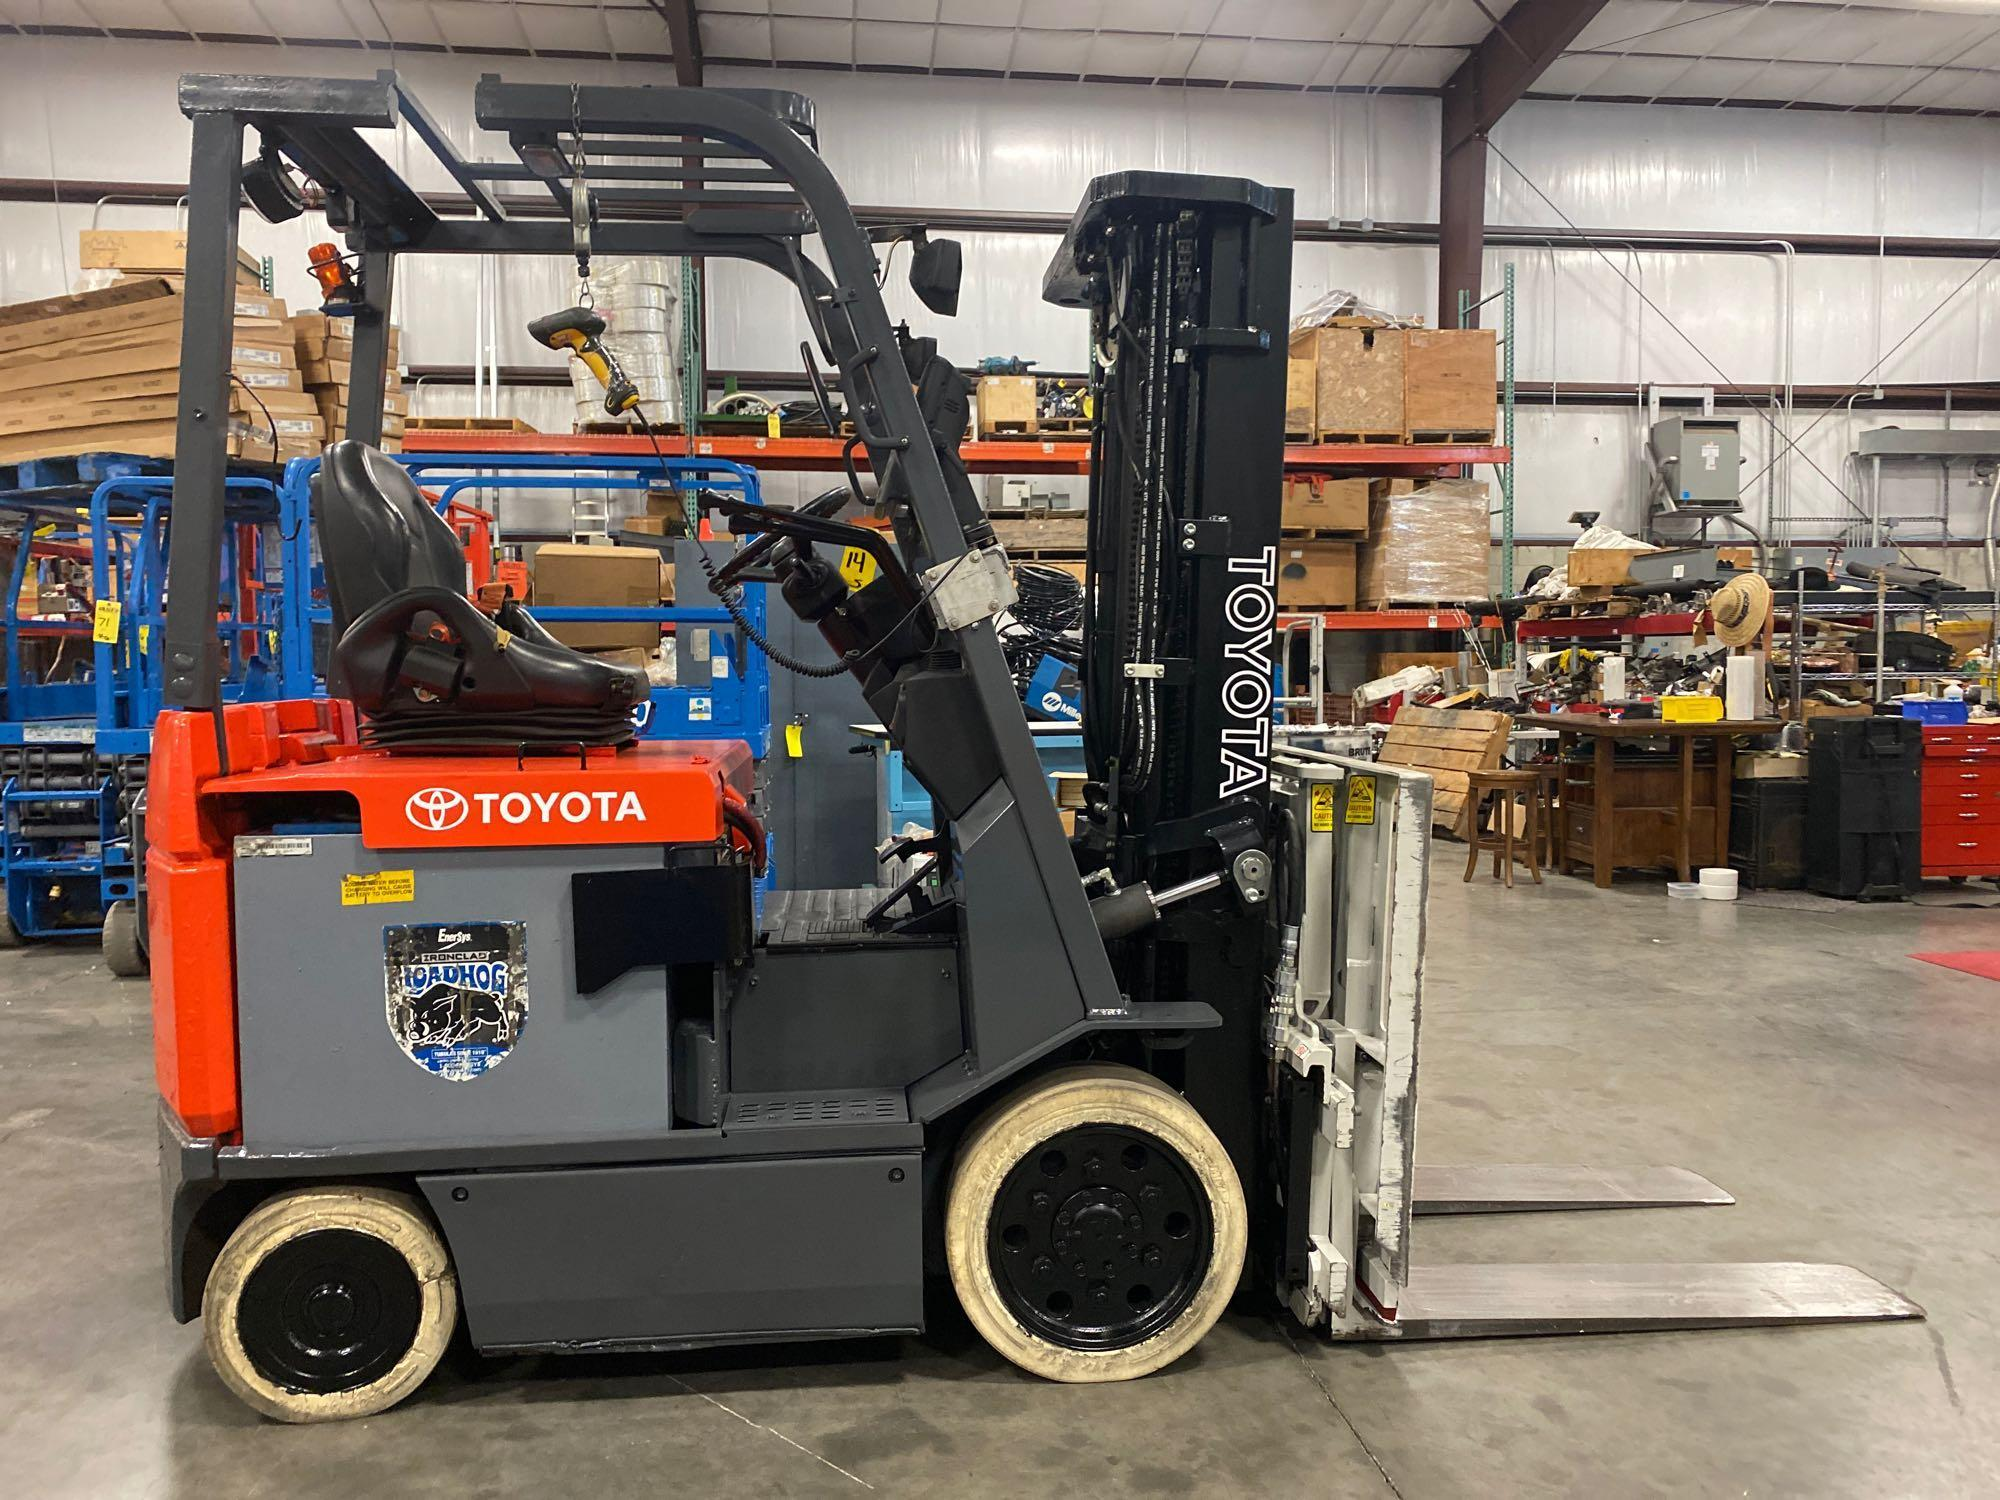 """TOYOTA ELECTRIC FORKLIFT MODEL 7FBCU25, 189"""" HEIGHT CAPACITY, TILT, SIDESHIFT, 36V, RUNS AND OPERATE - Image 2 of 11"""